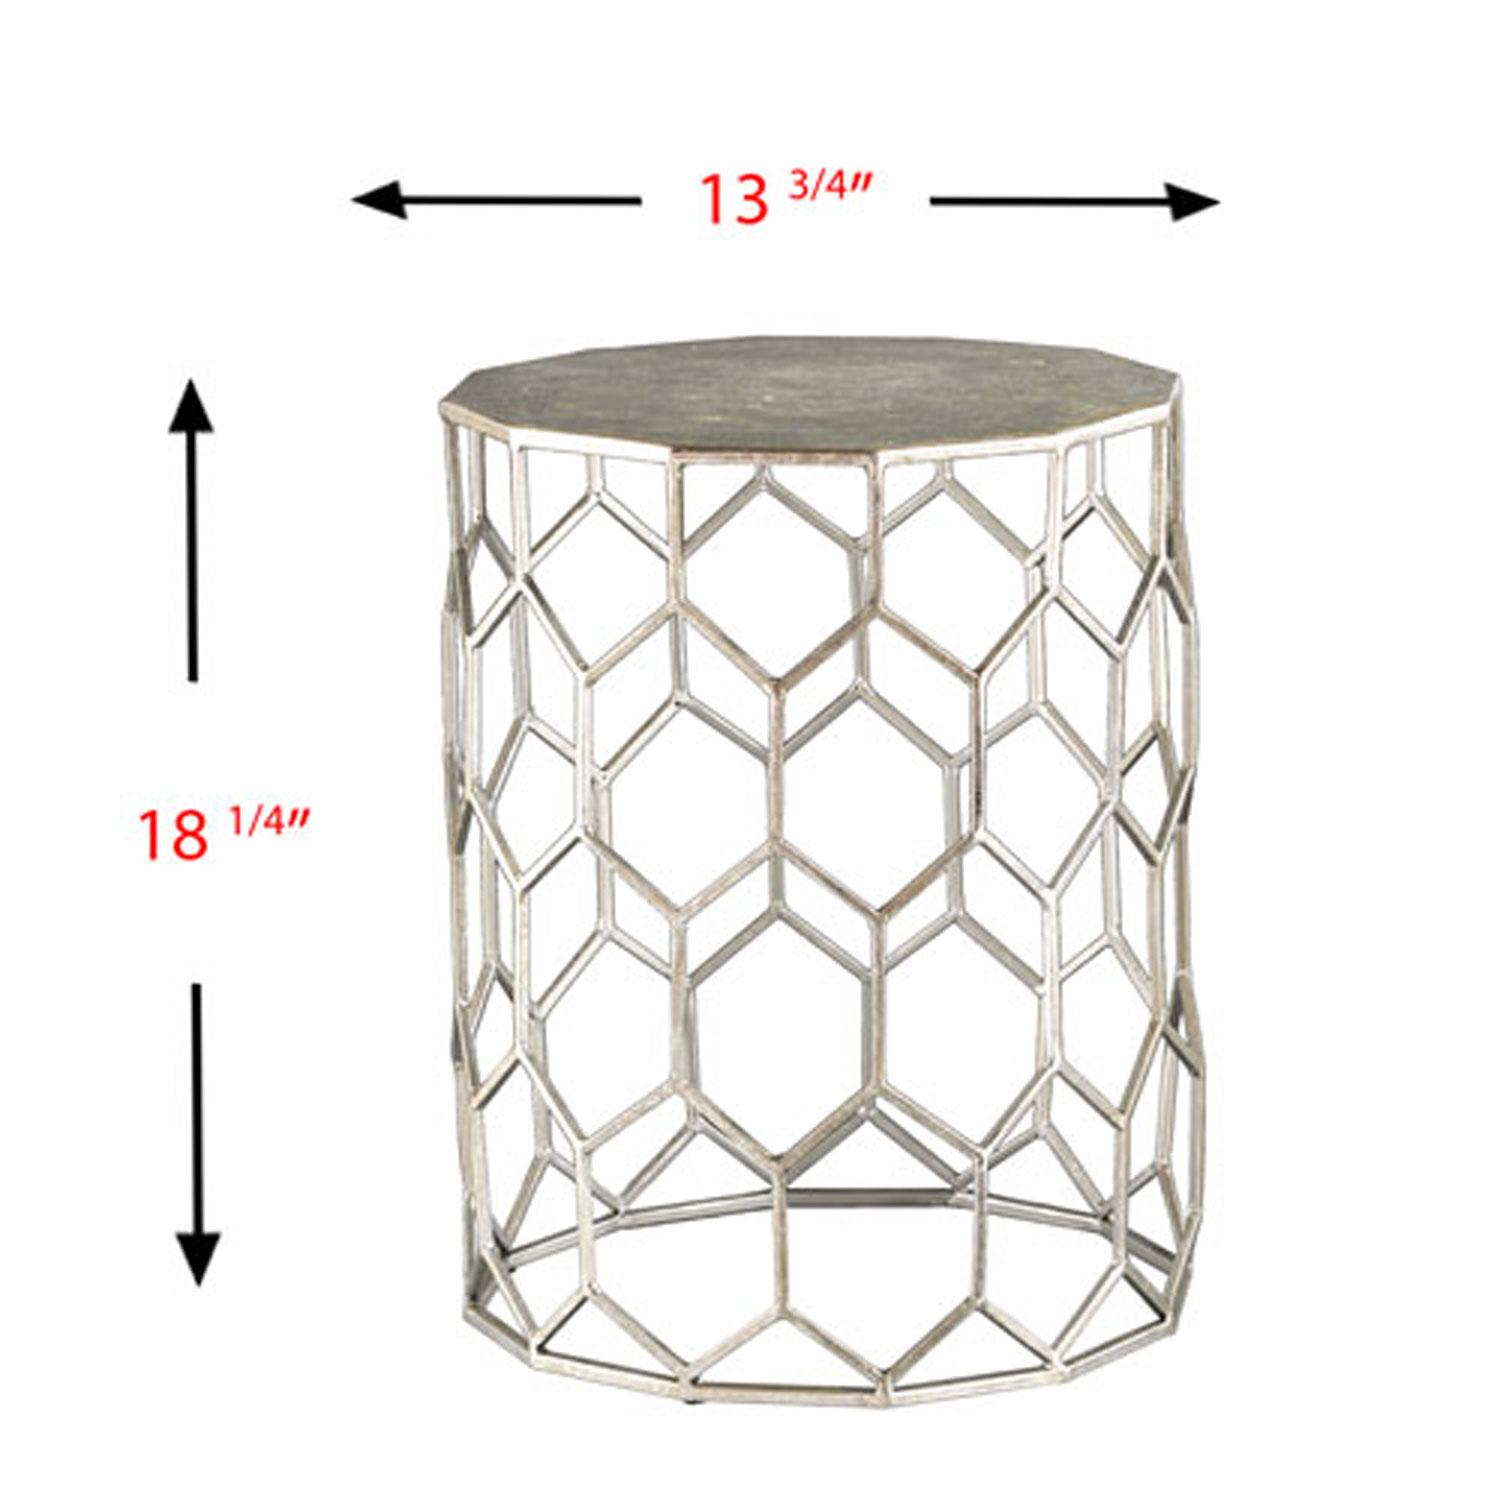 first monroe silver metal accent table bellacor pedestal hover zoom glass top lamp coffee sets clearance dorm room furniture floating corner desk safavieh home collection brogen